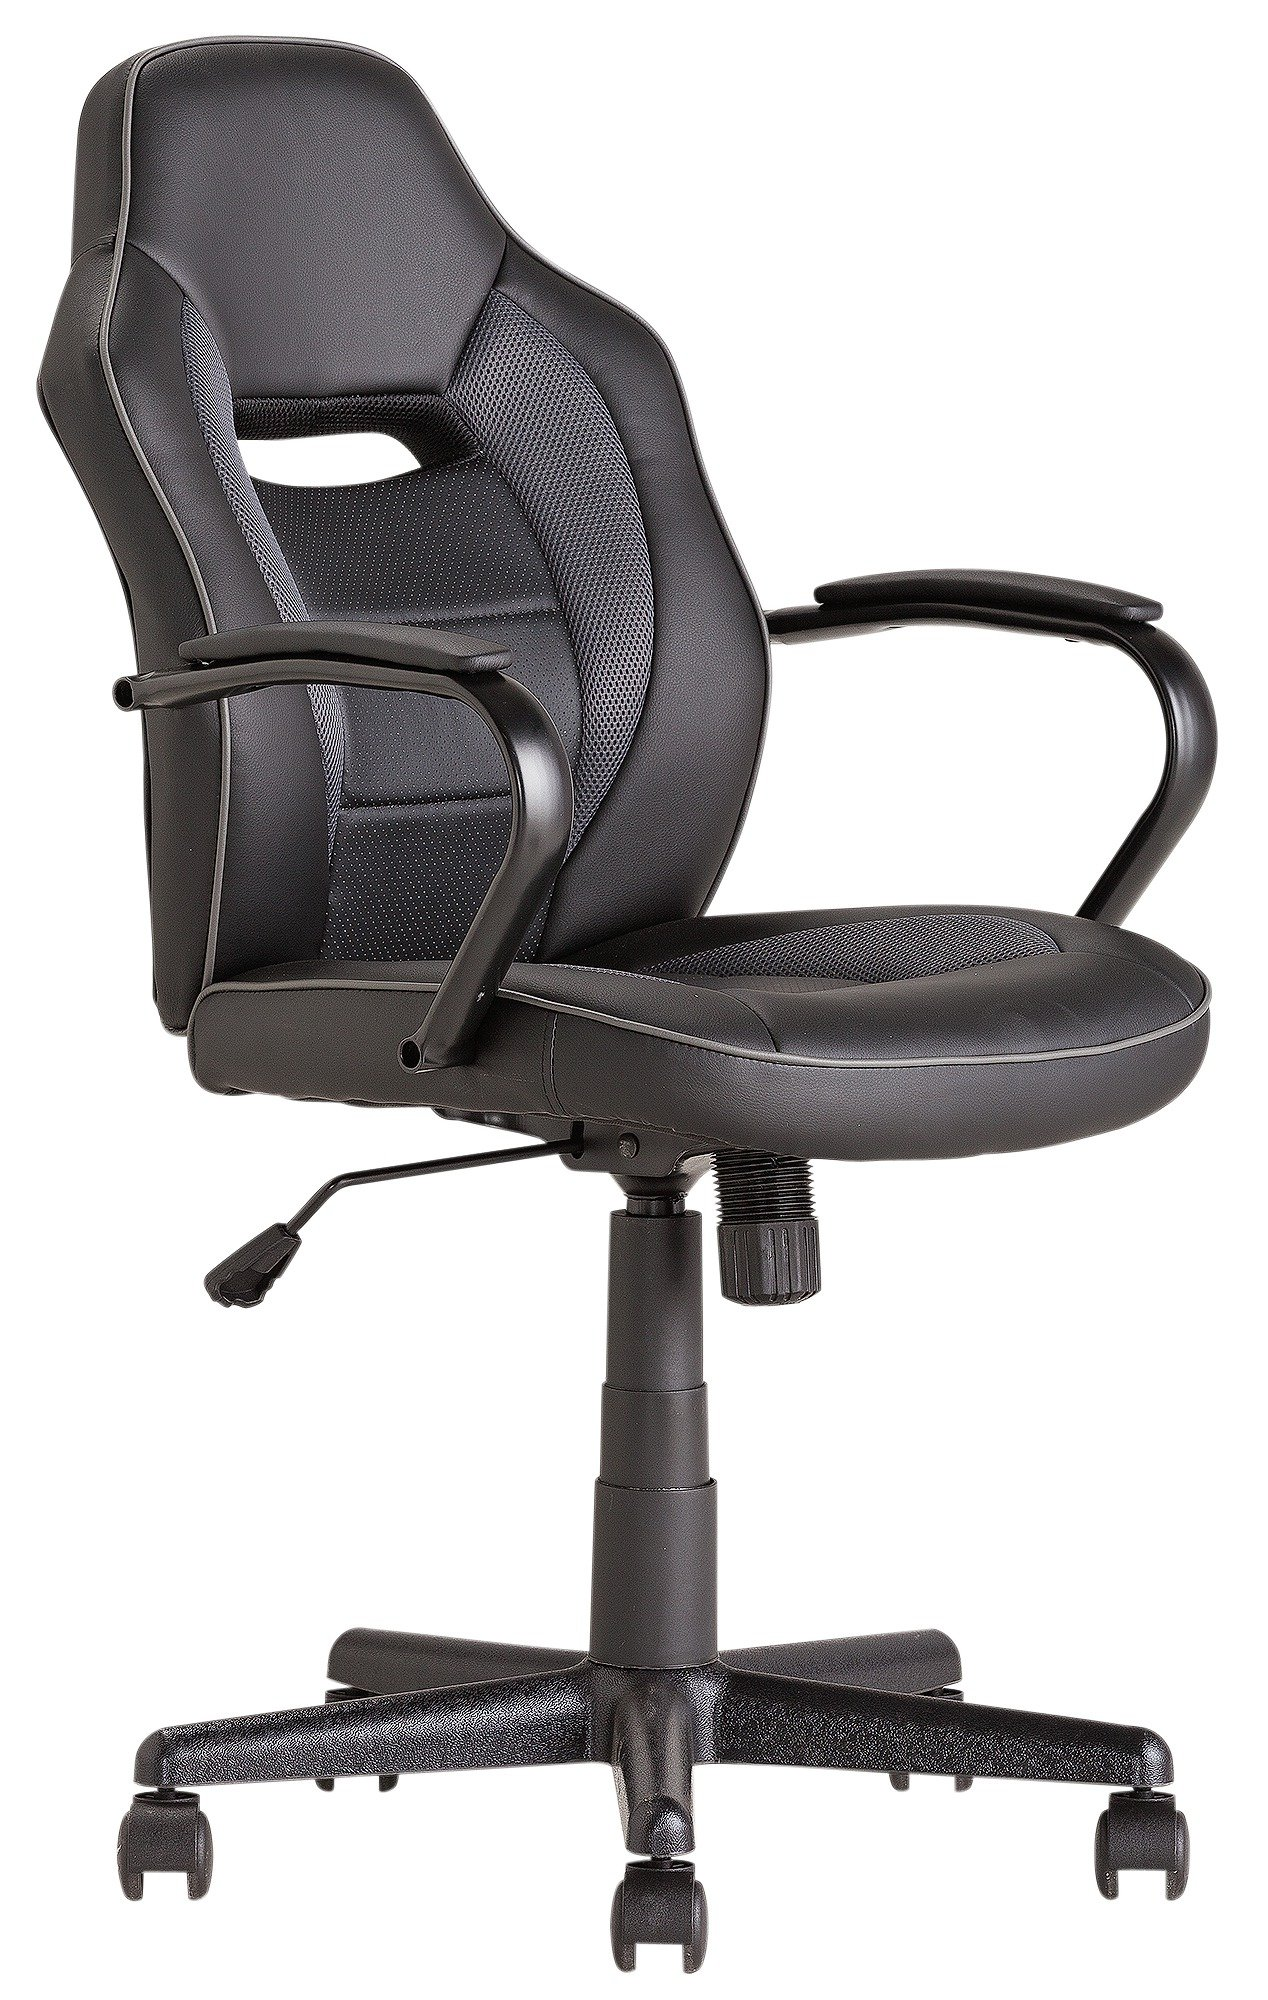 comfortable office chairs for gaming. mid back office gaming chair - black608/8734 comfortable chairs for